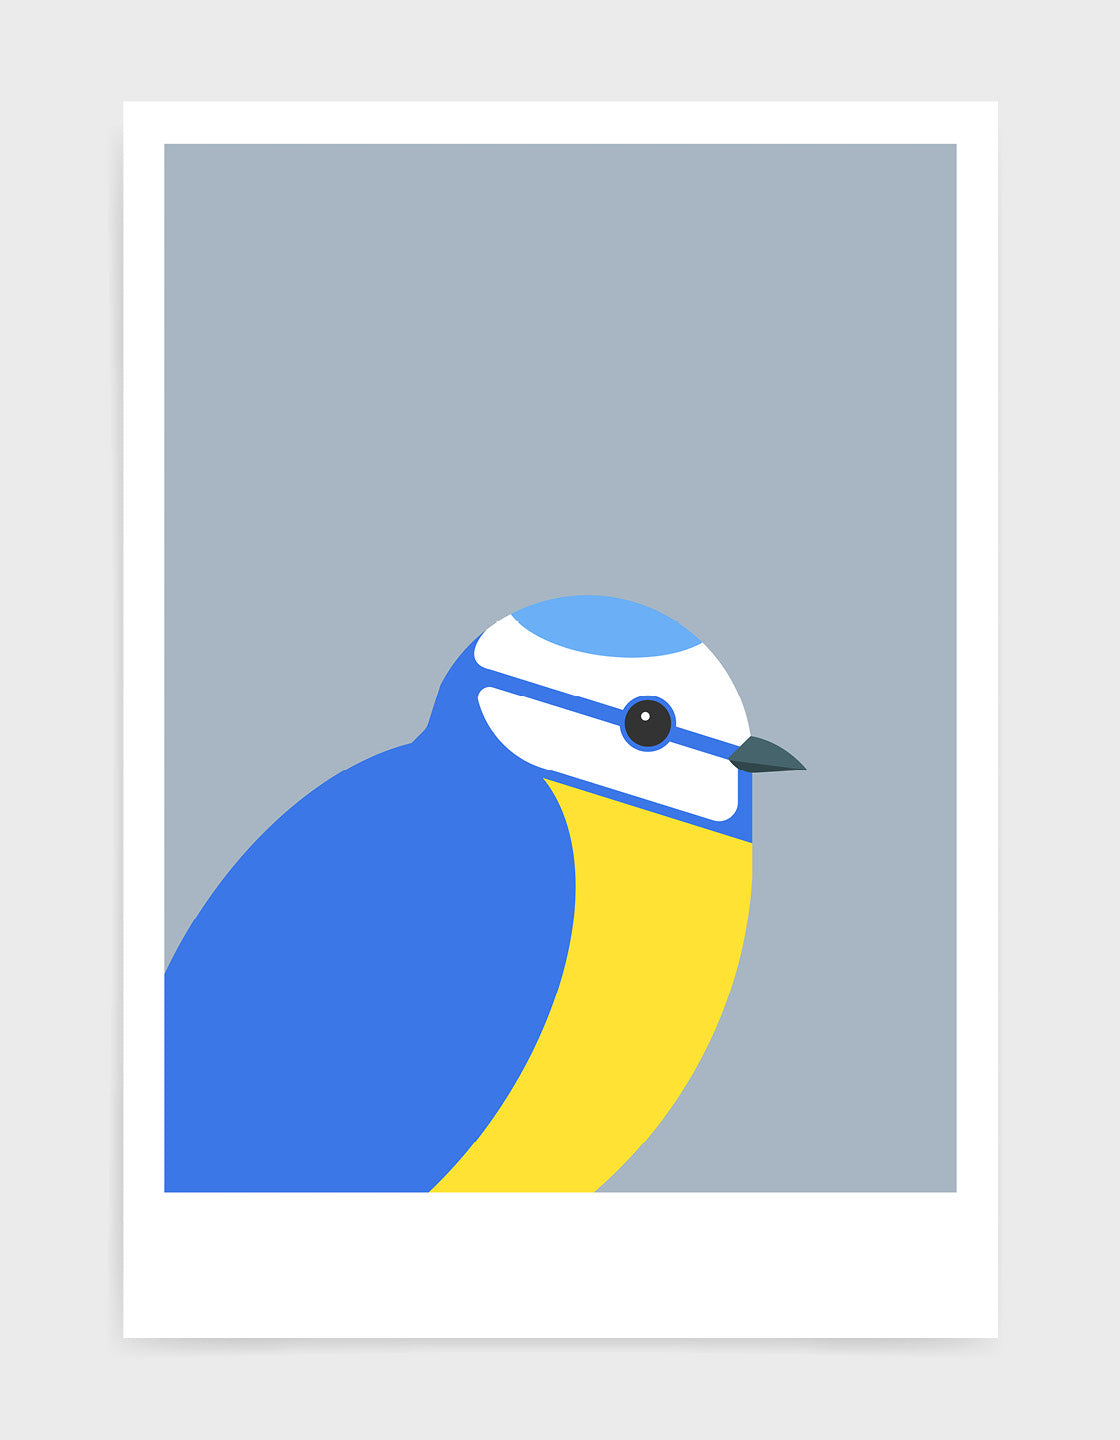 illustration of a blue tit bird against a grey background